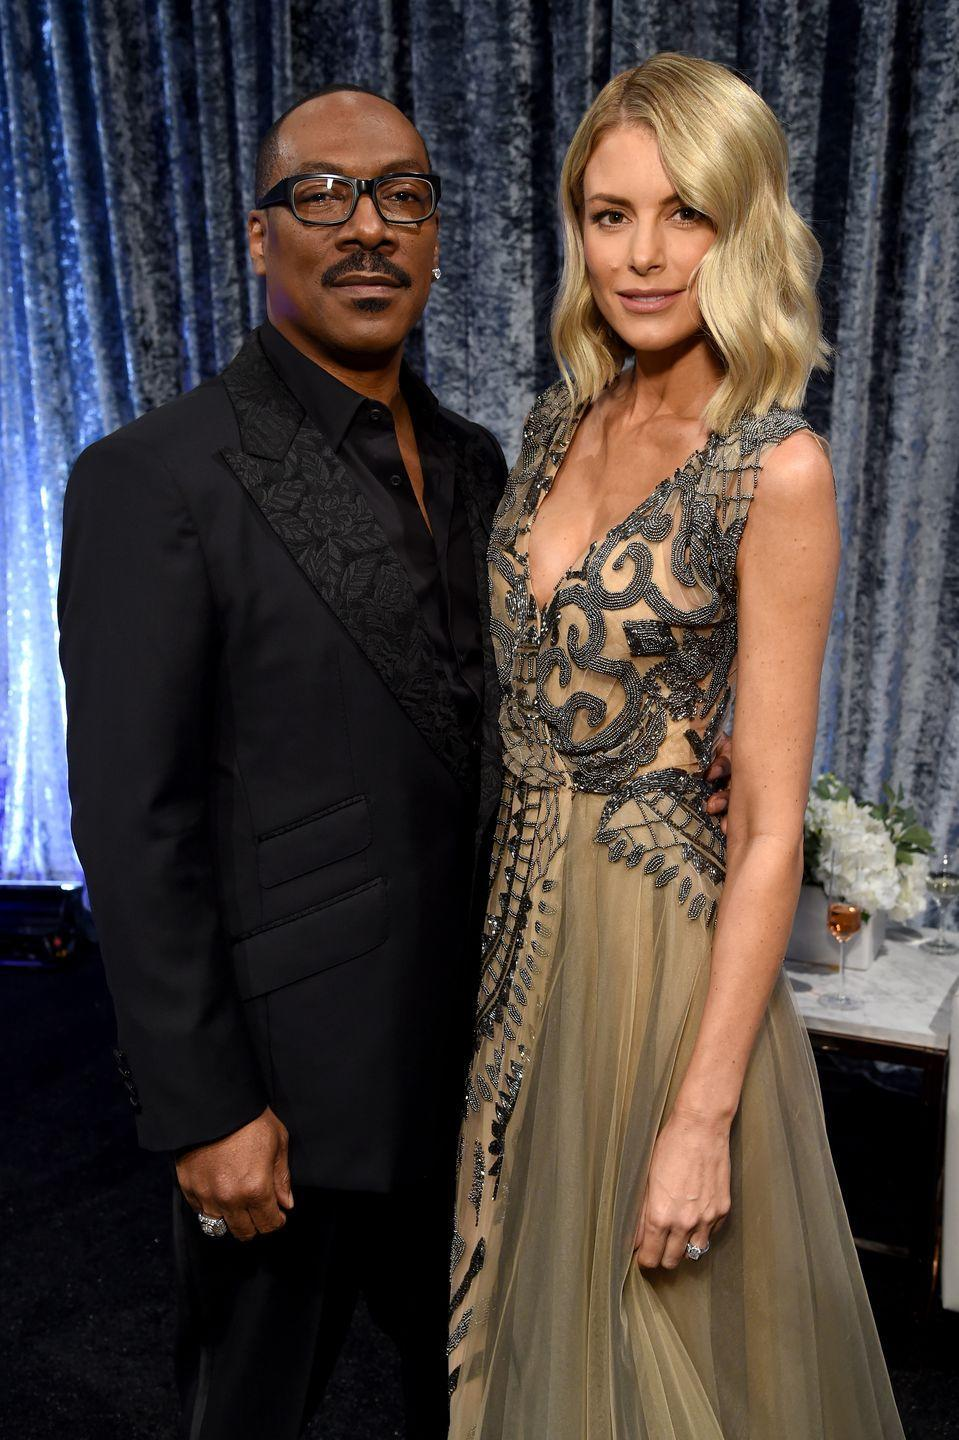 <p>After six years together, Eddie Murphy and Paige Butcher, a notoriously private couple, announced their engagement in 2018. The couple share two children together, a daughter Izzy and son Max. </p>